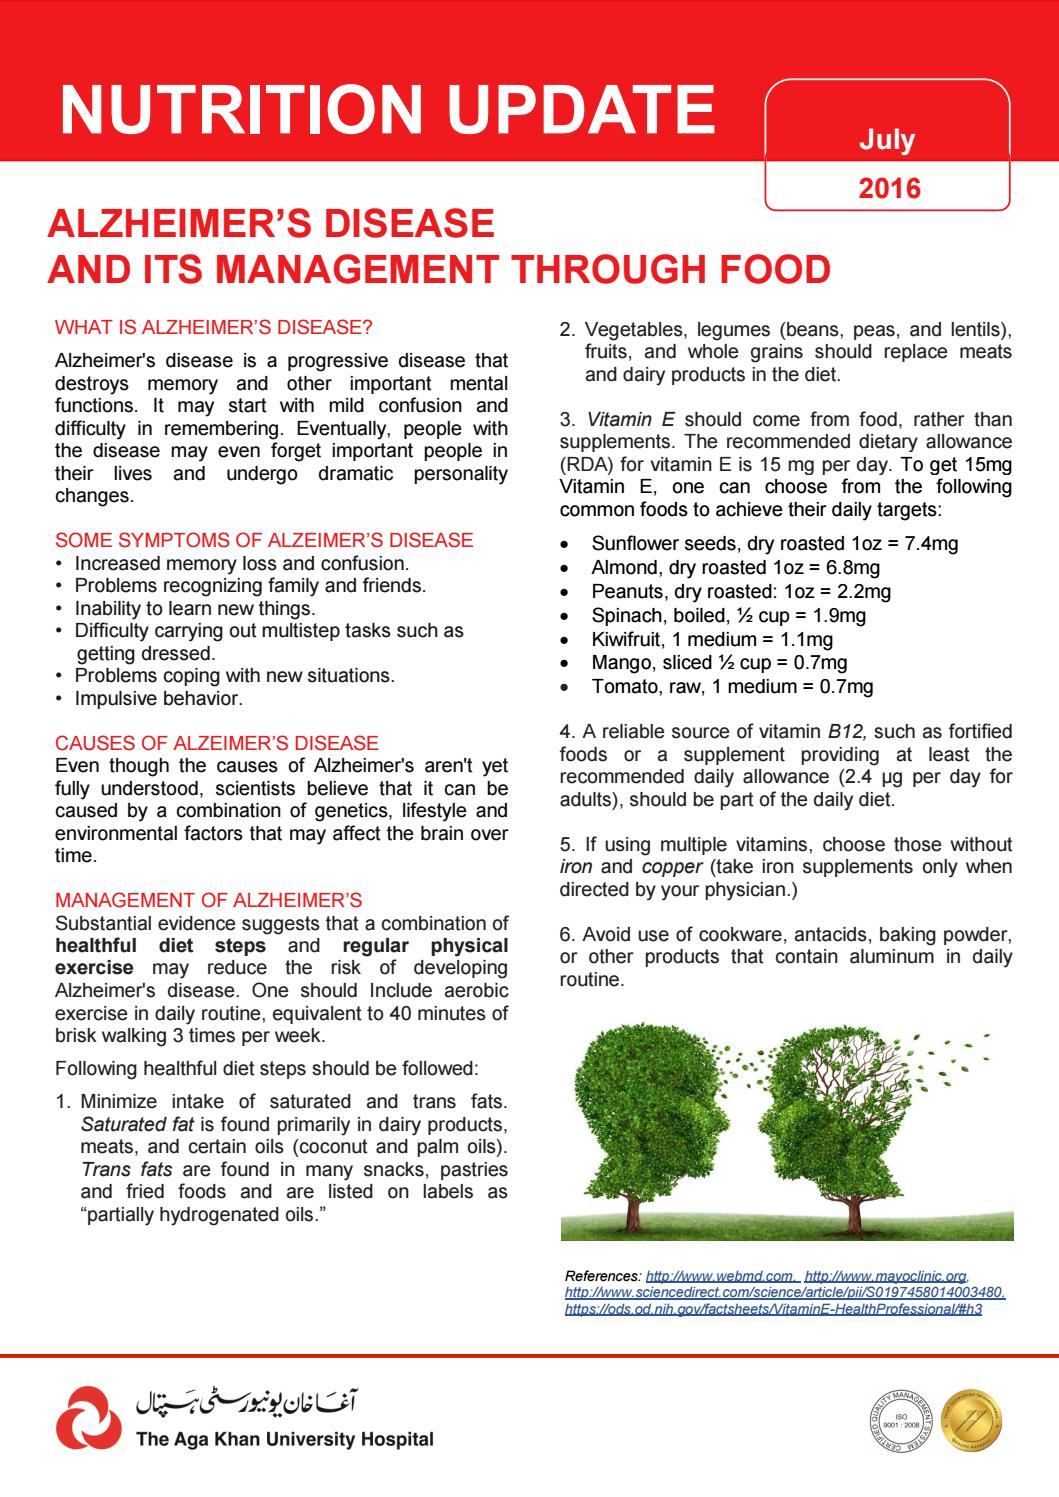 Nutrition tips for alzheimers by agakhanhospital - issuu